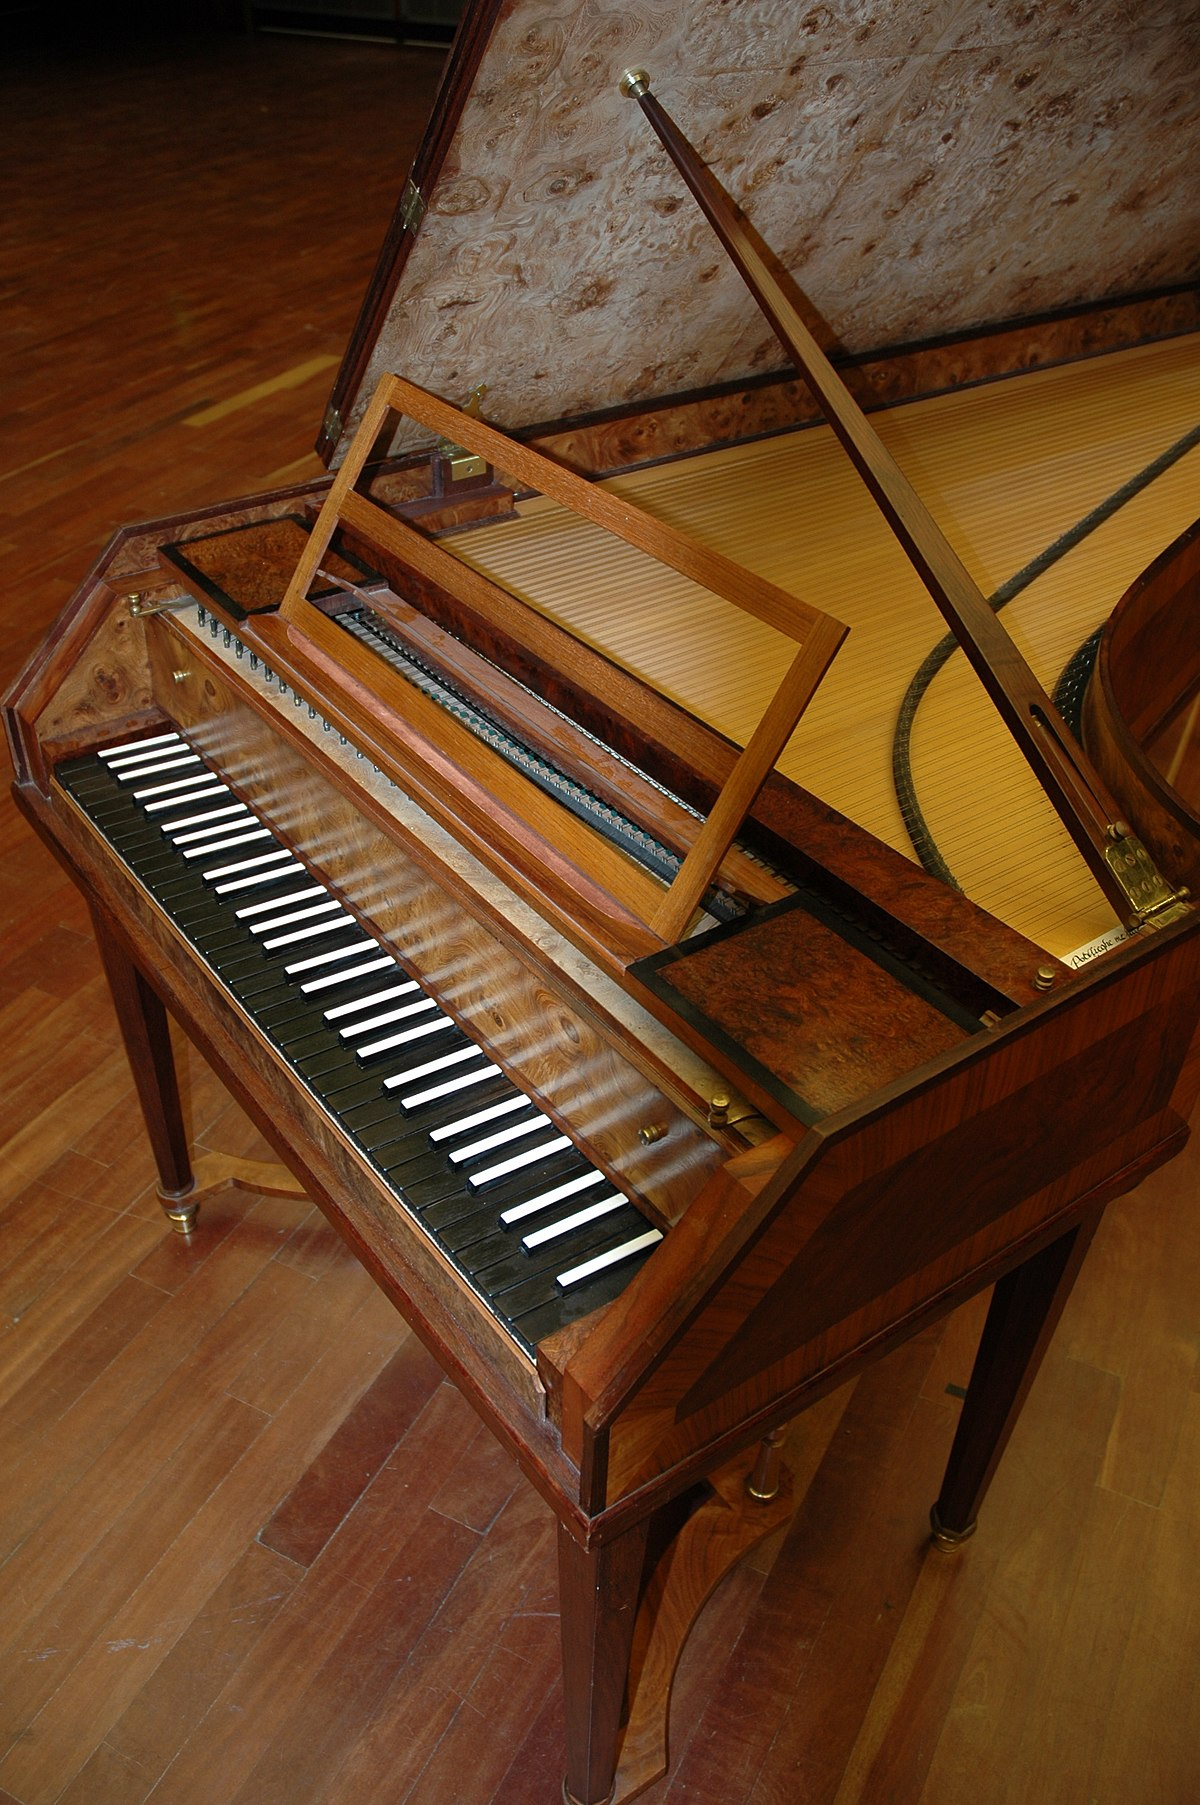 Tangent Piano Wikipedia